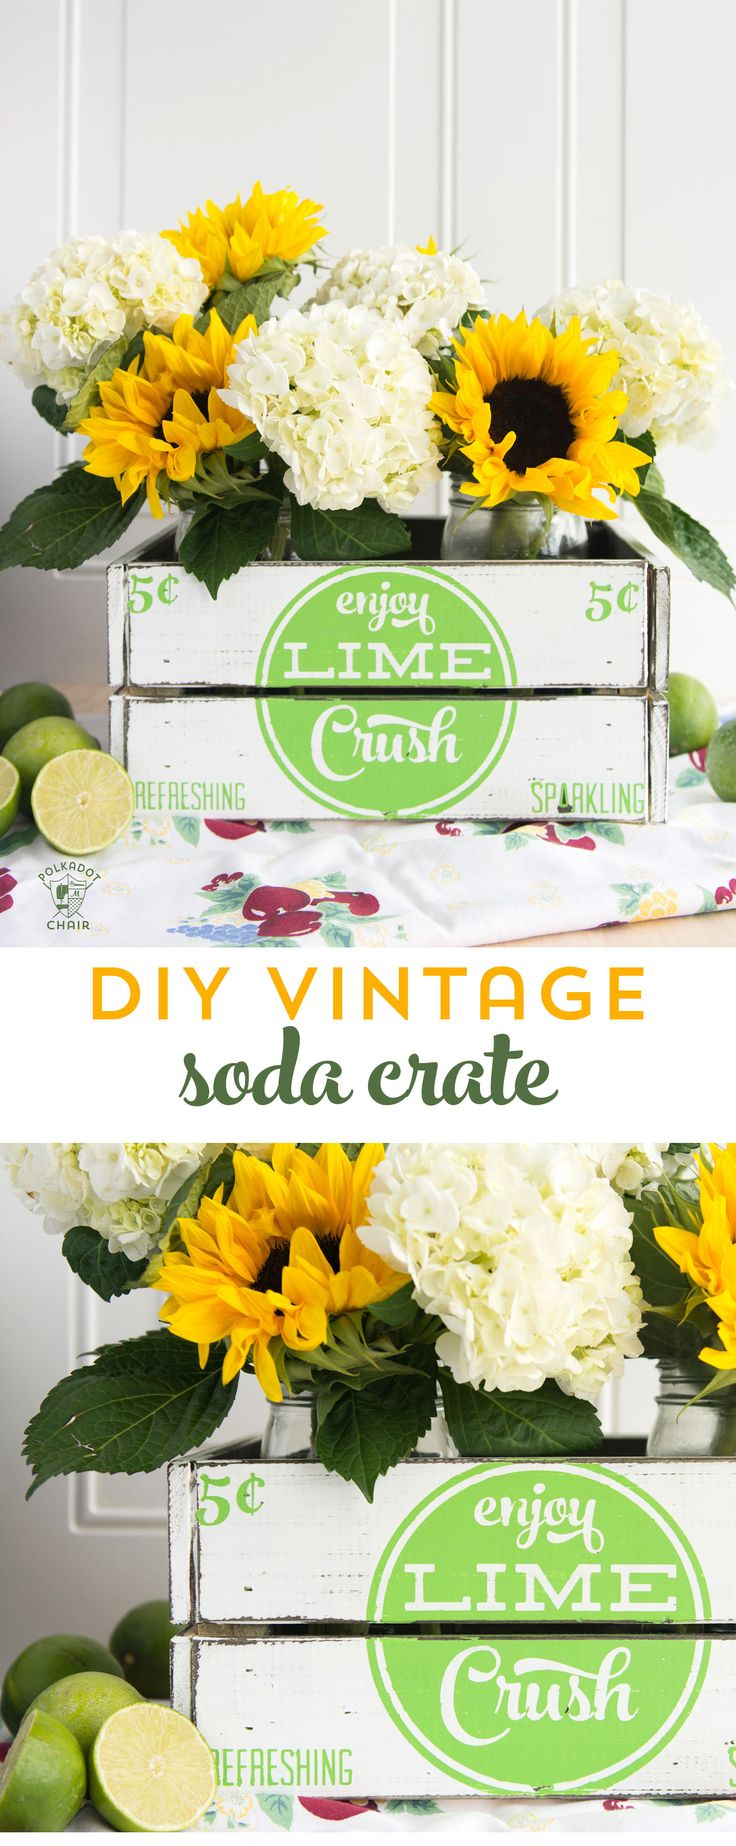 learn how to make your own DIY Farmhouse Decor. This hand painted vintage soda c...